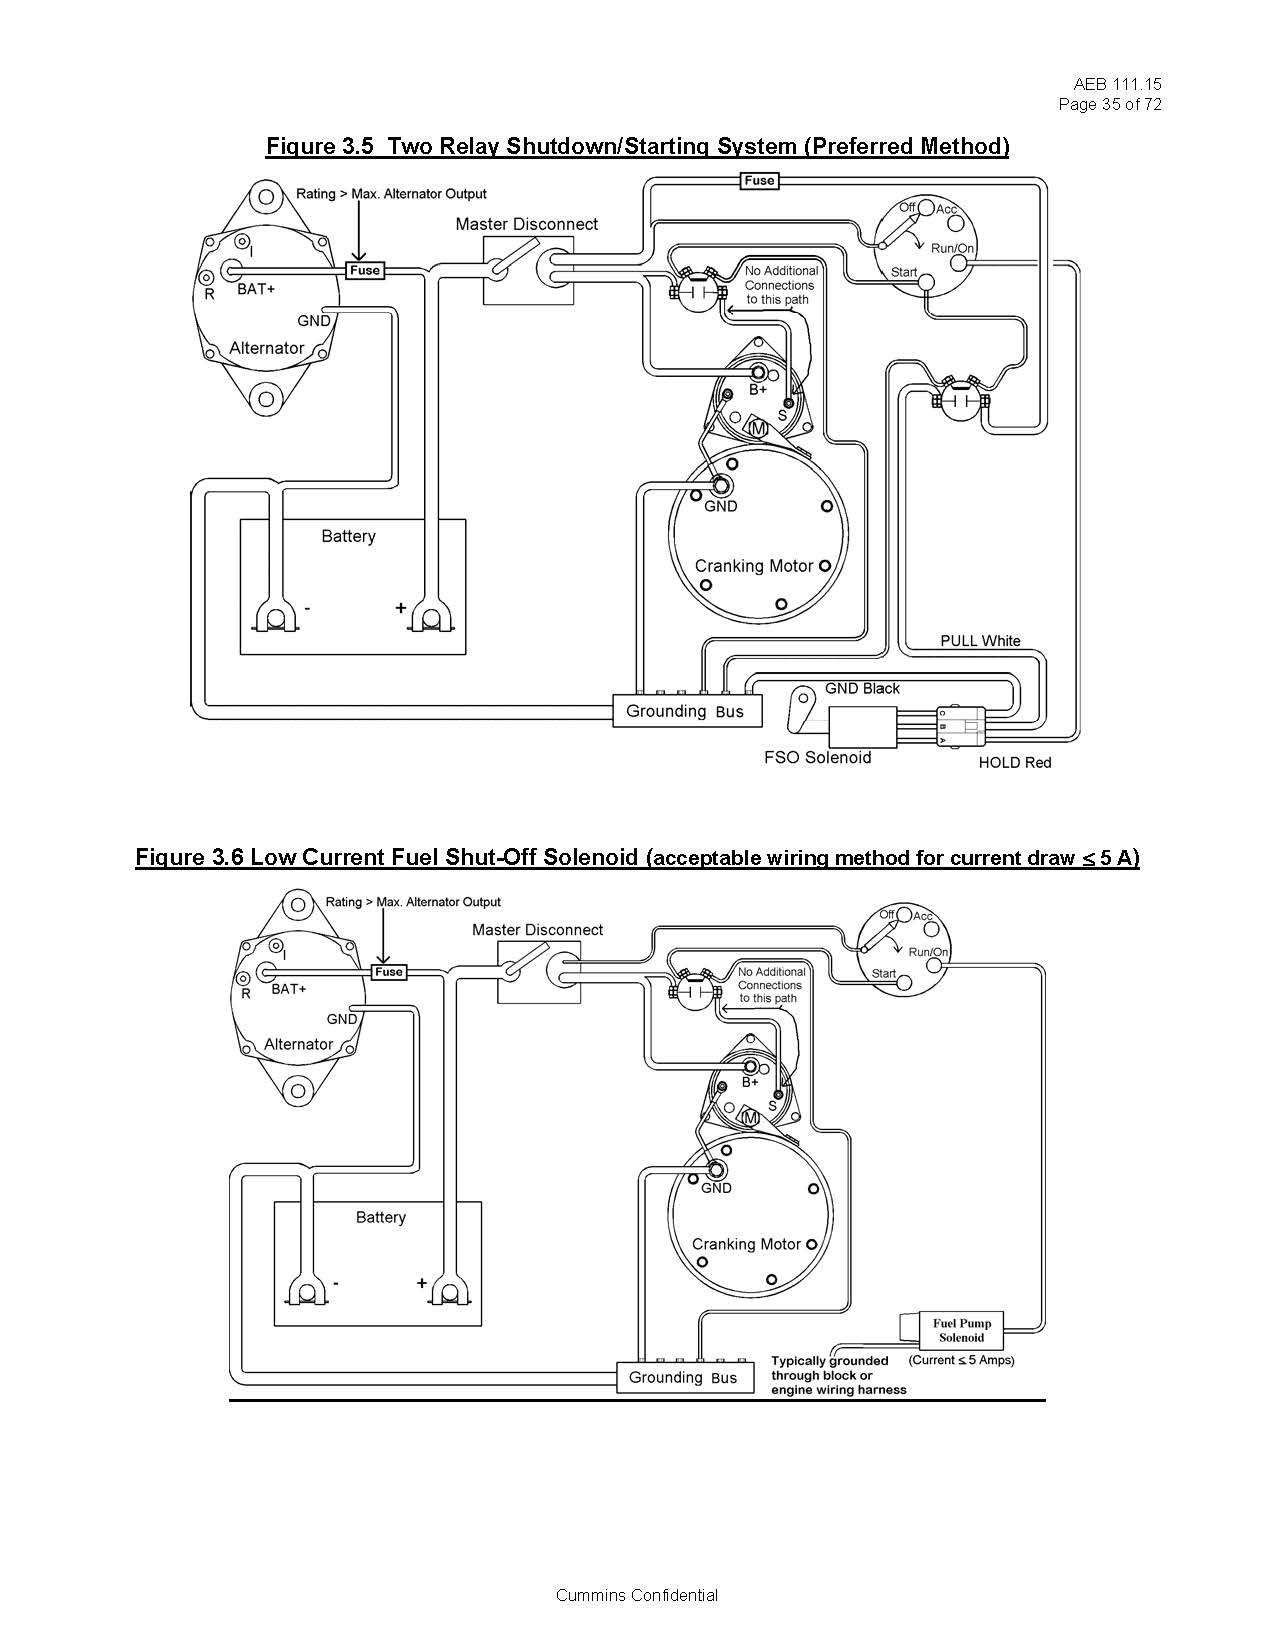 Basic Fuel Shutoff Solenoid And Starter Wiring Information Hitachi Pages From Cummins Page 2